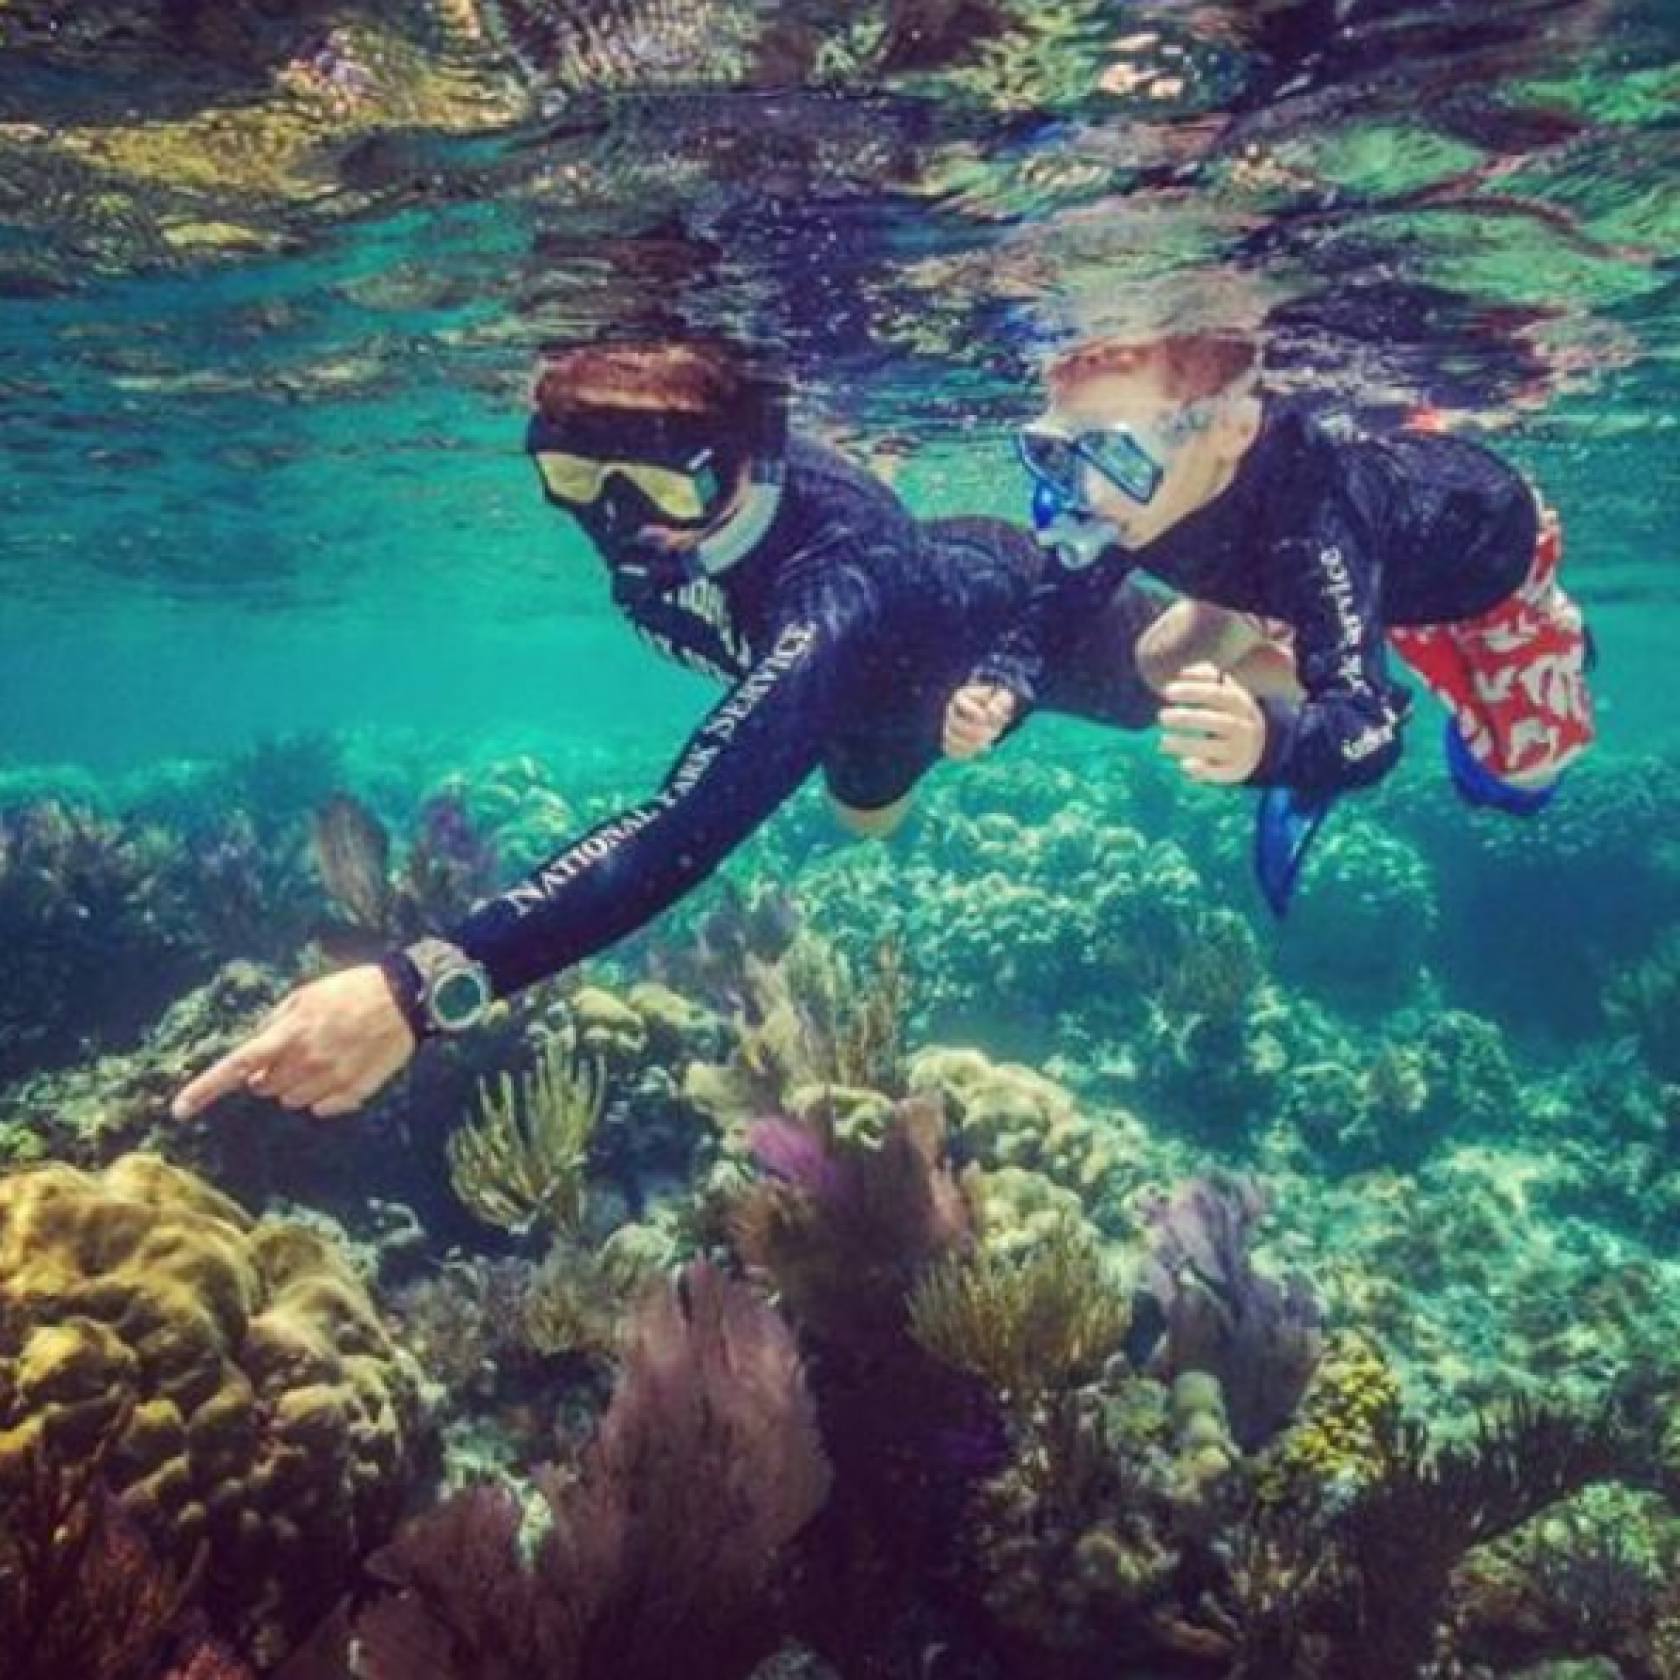 Two national park rangers point at fish and coral while scuba diving